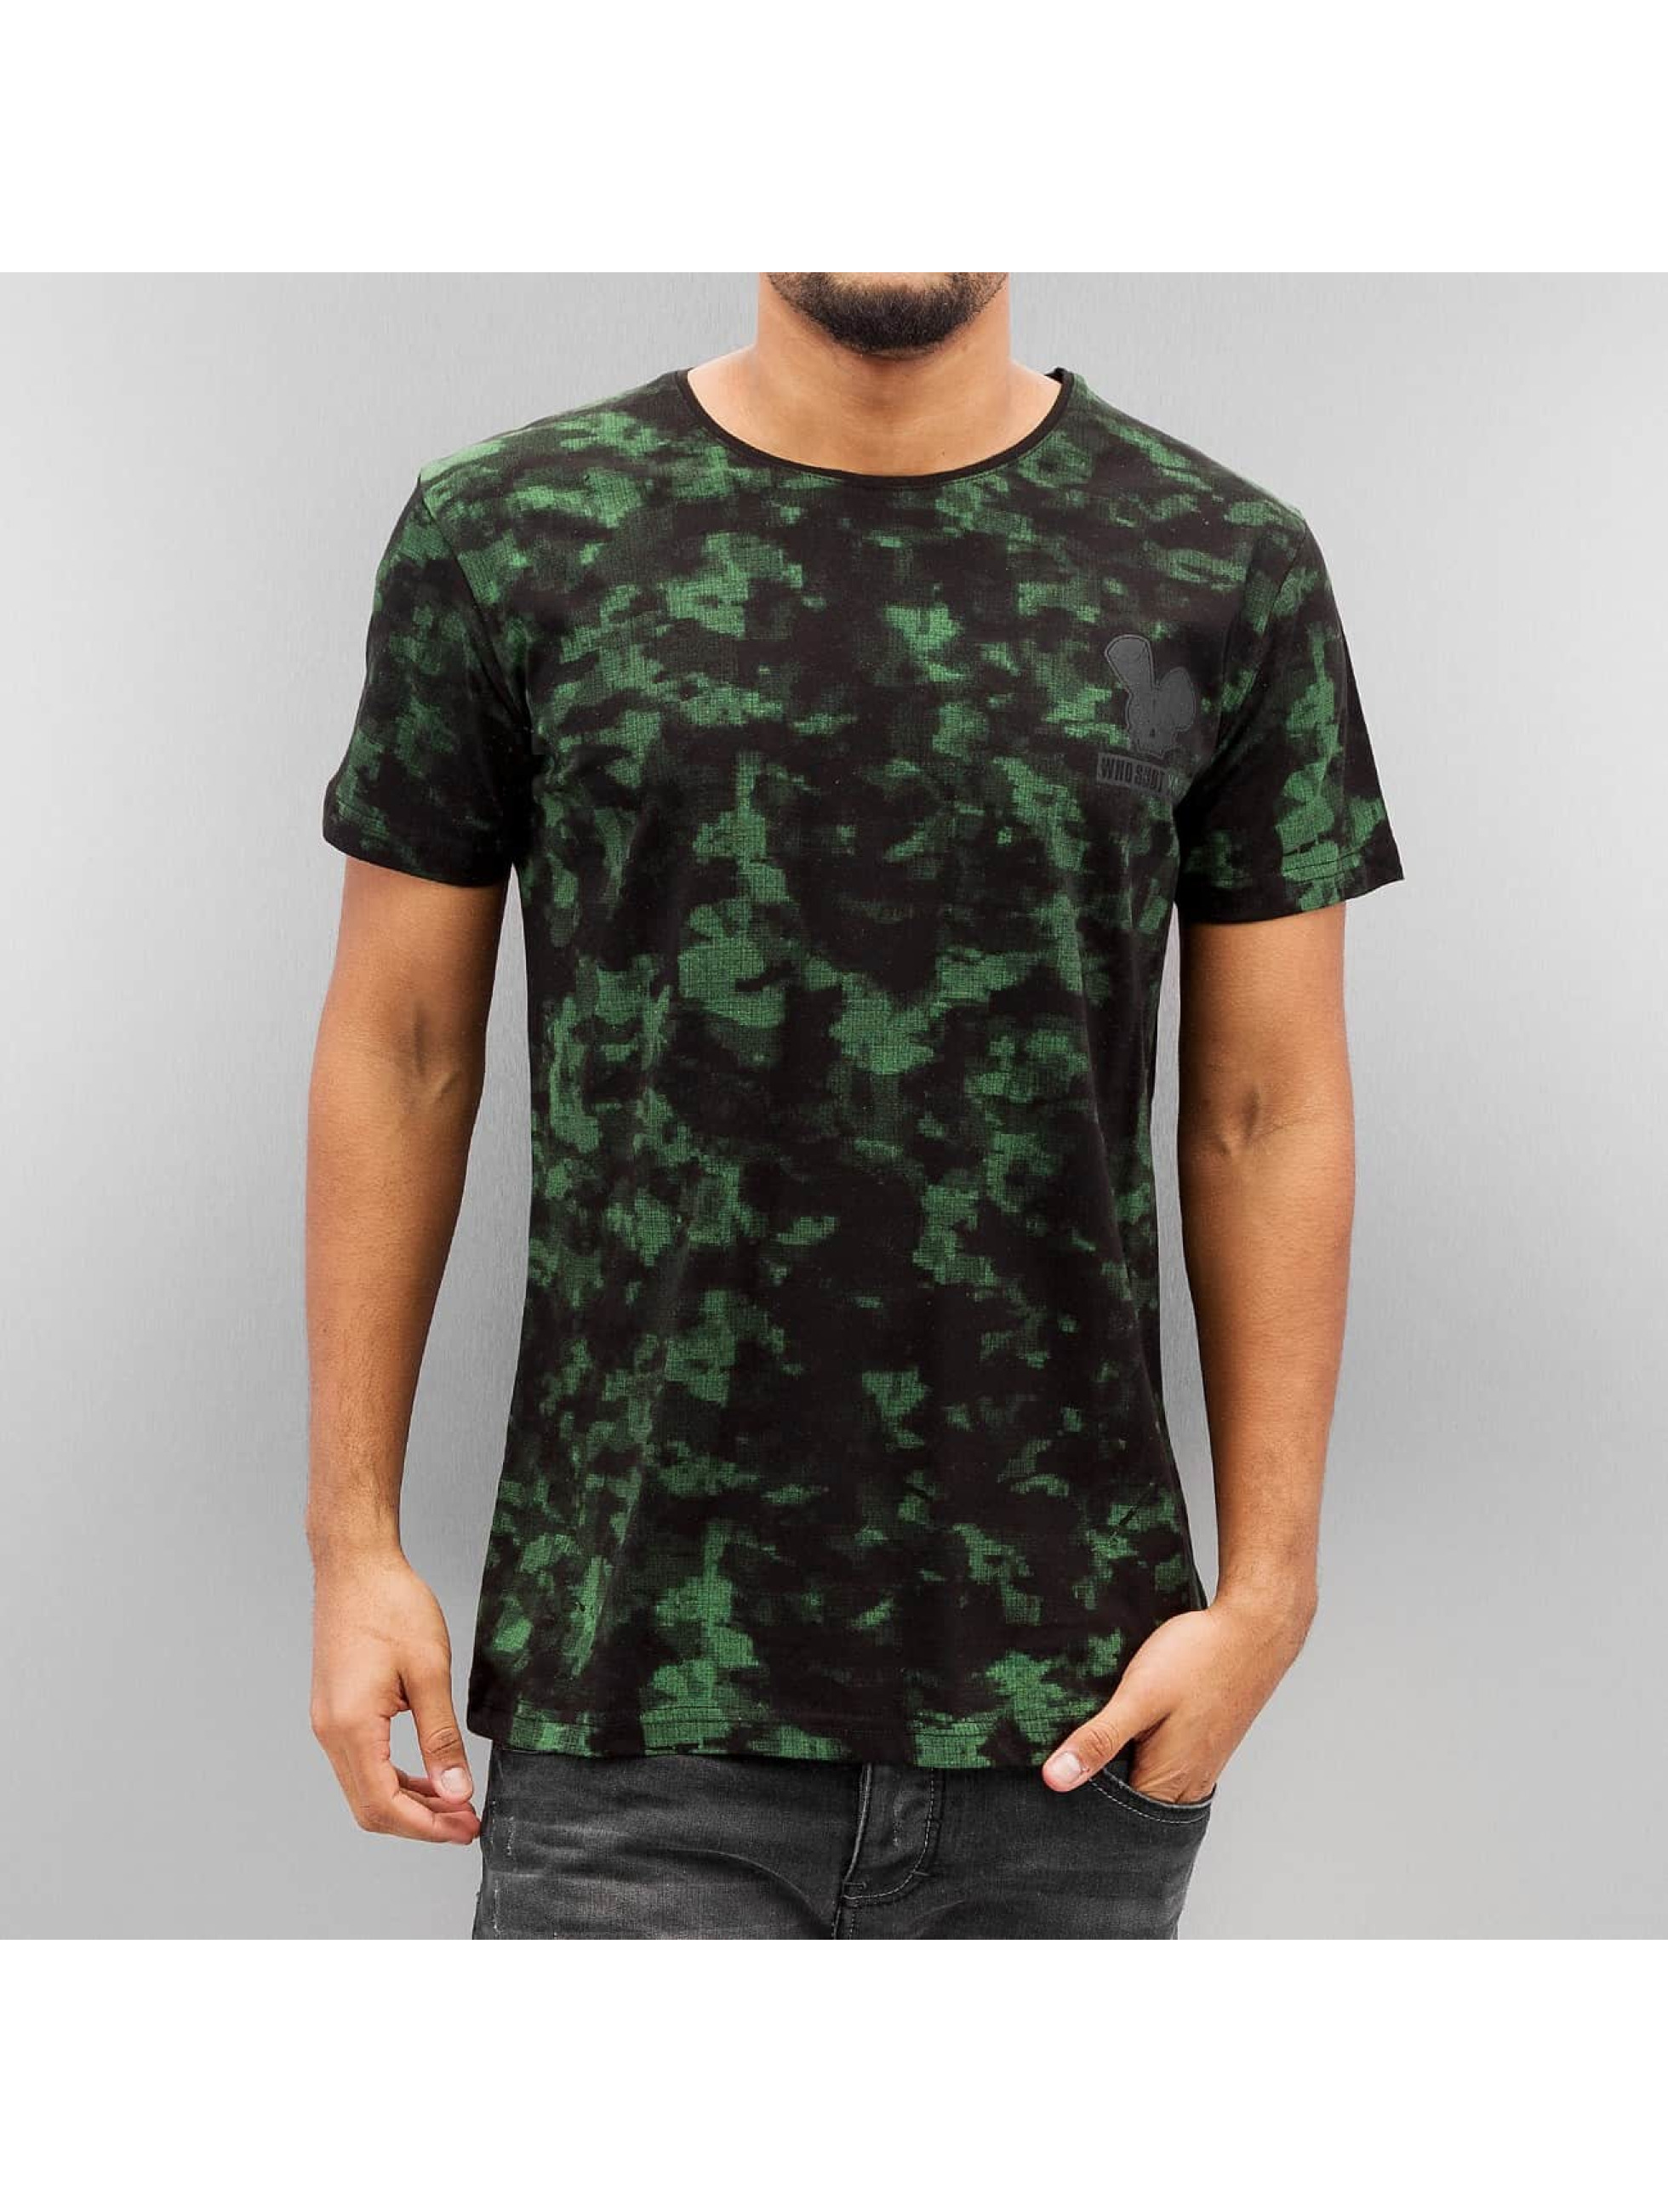 -Shirt Fashion in camouflage